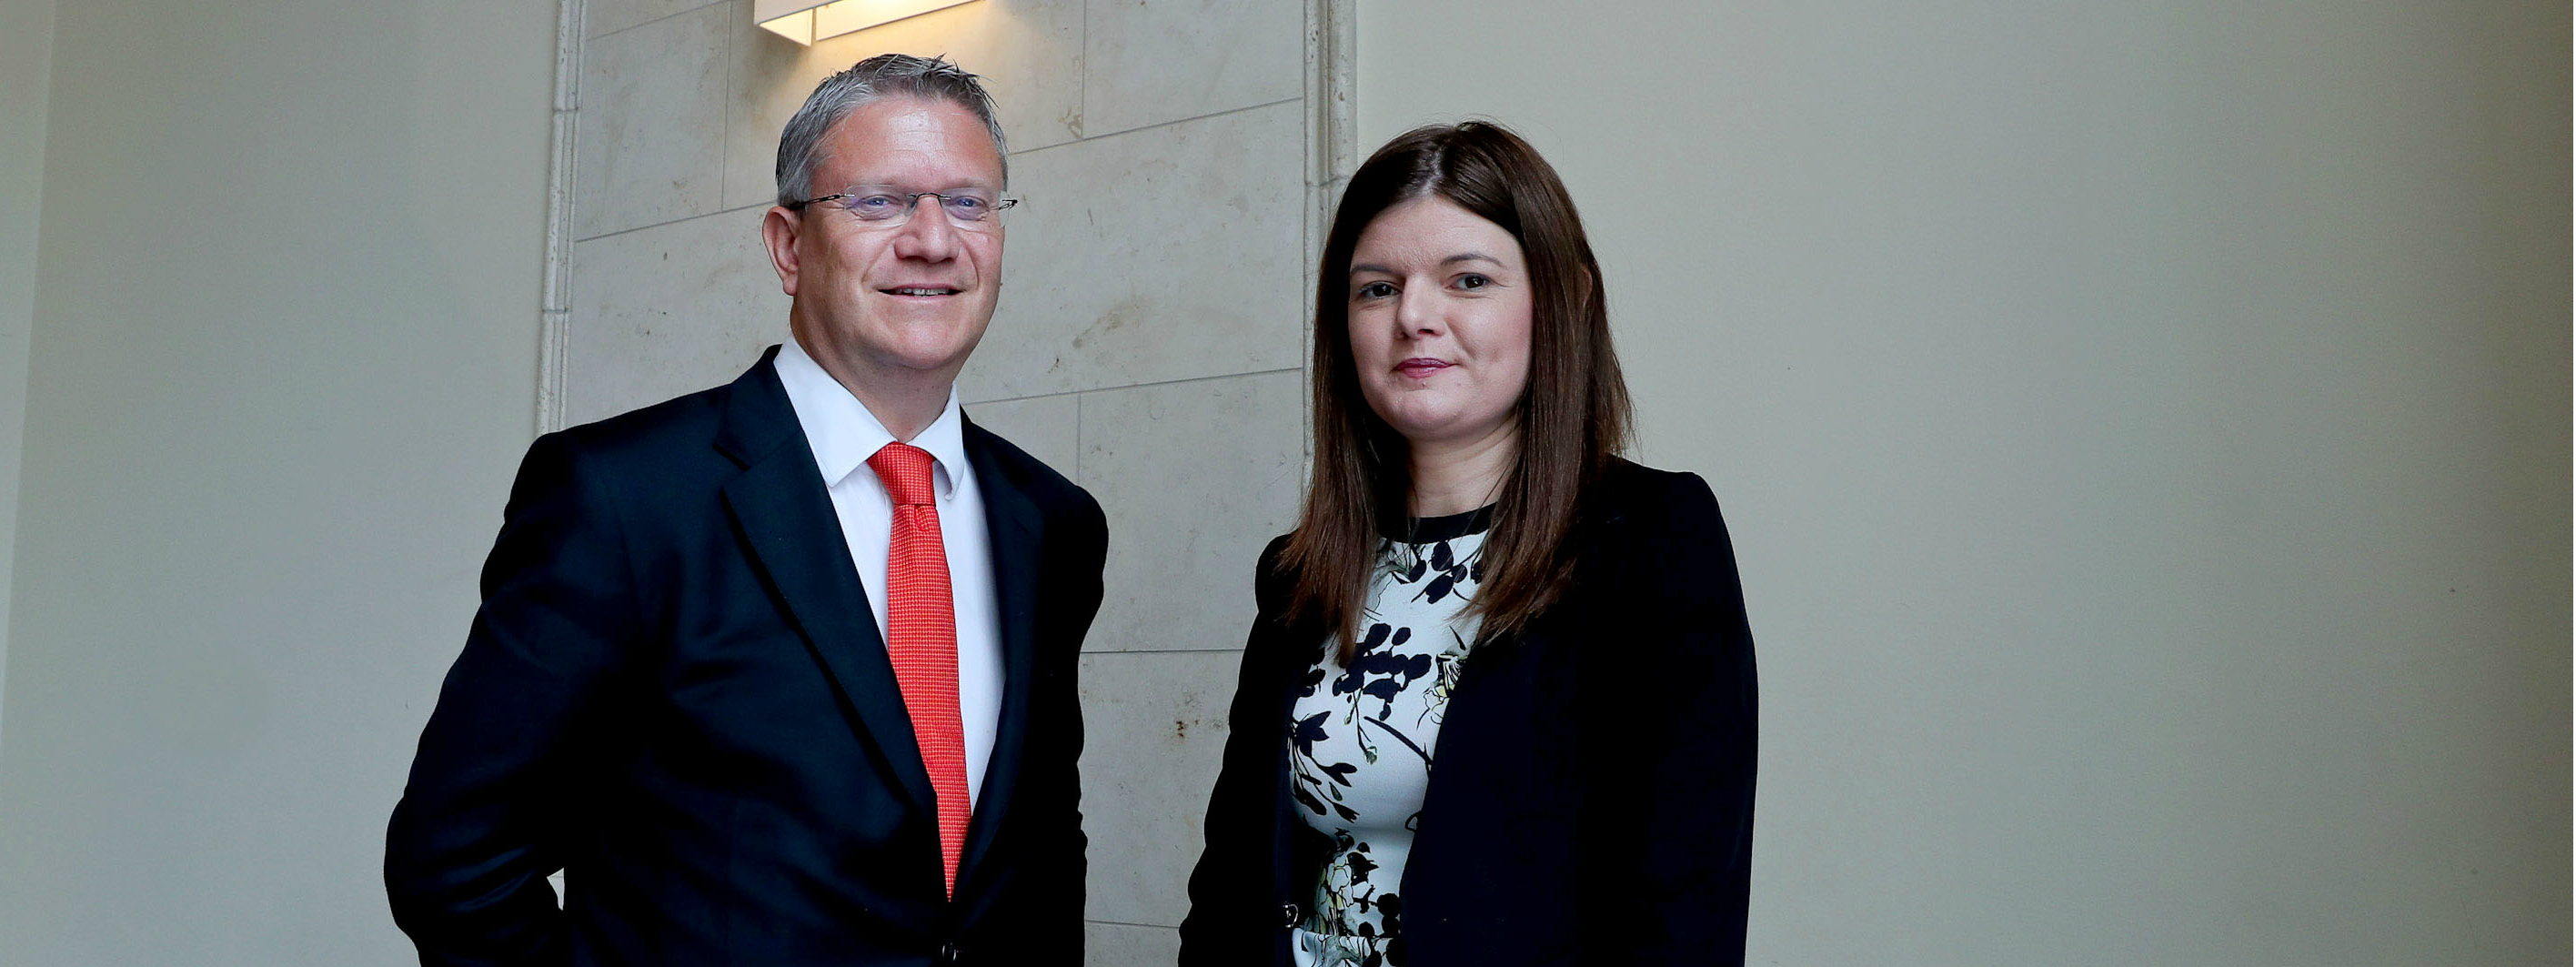 Co-Chairs - Andrew Rosindell MP & Kathleen Funchion TD